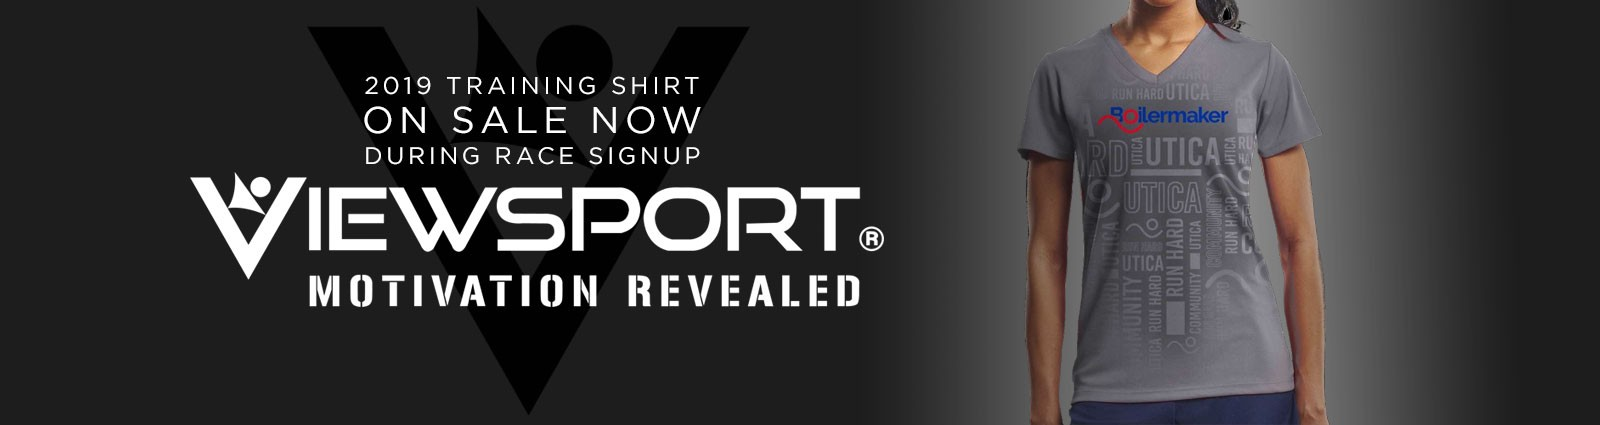 2019 Training Shirt - ON SALE NOW - Viewsport Motivation Revealed